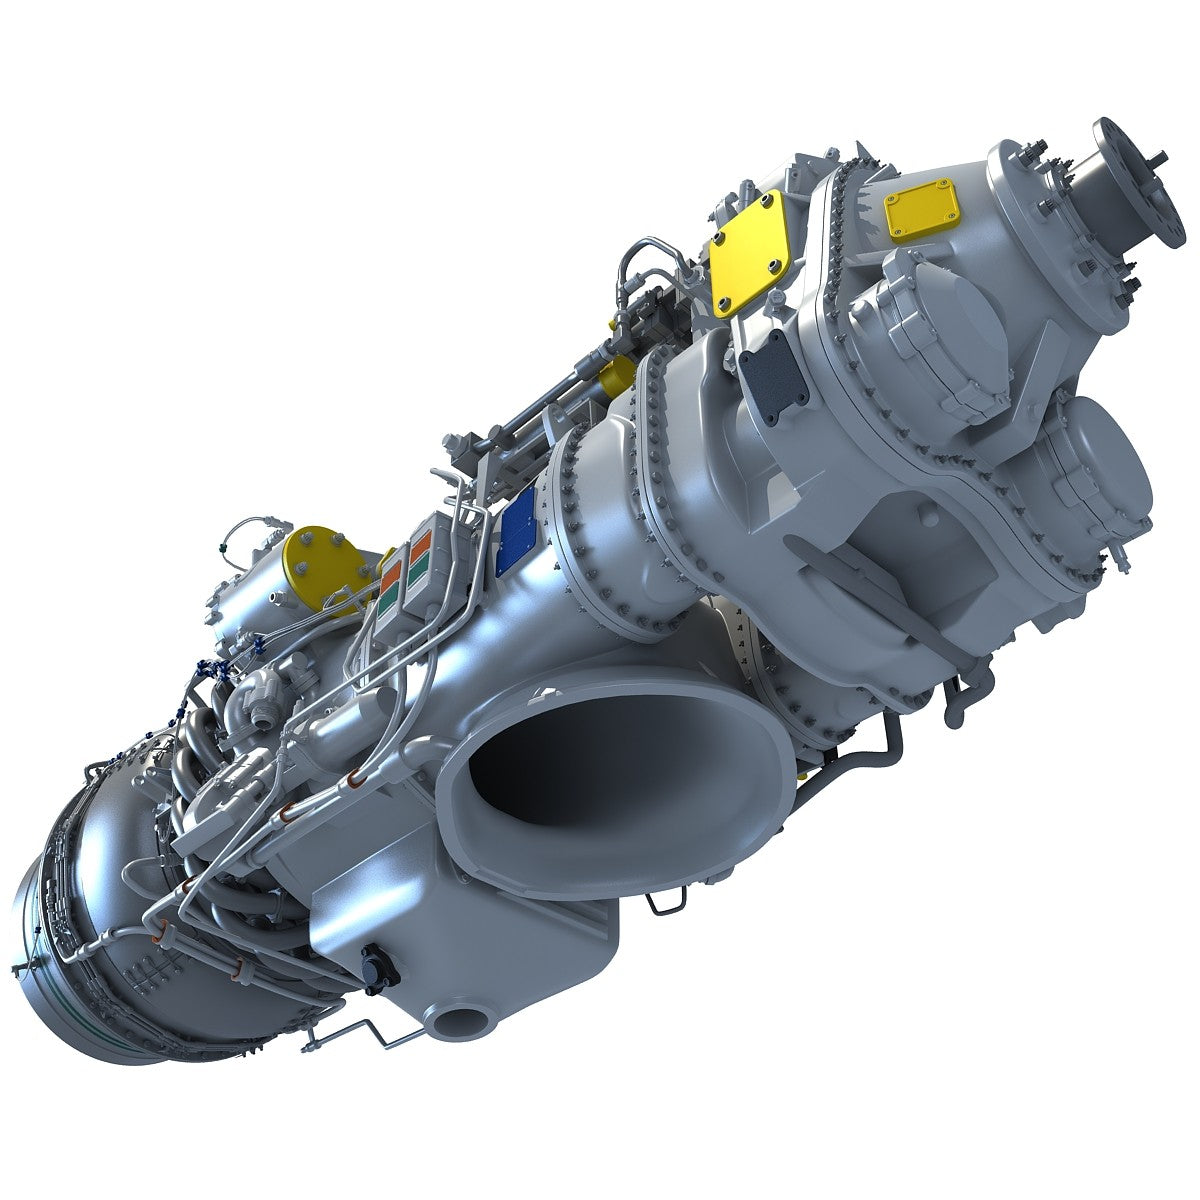 Turboprop 3D Engine Model